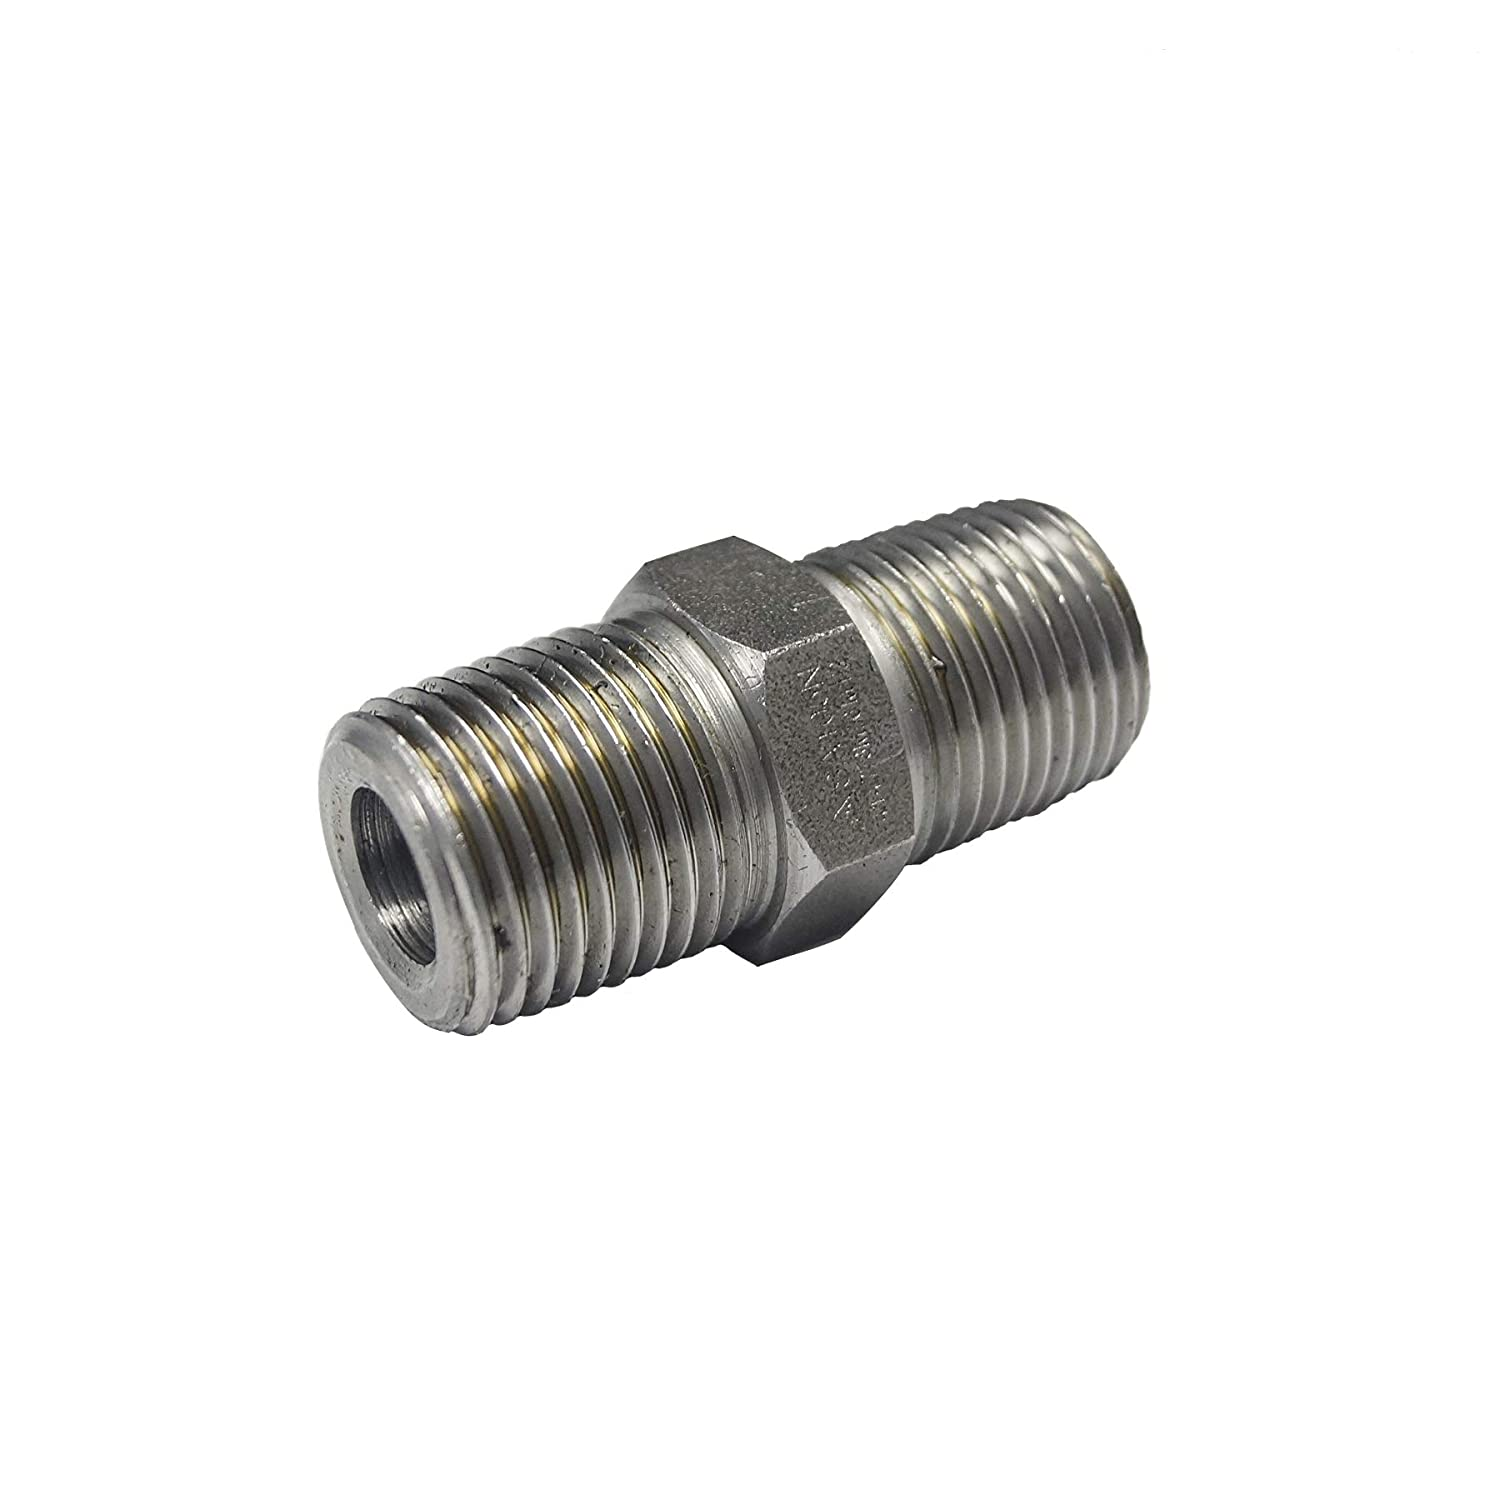 Carbon Steel Boston Year-end annual account Mall A105 Forged Pipe Fitting Male Nipple Hex 2